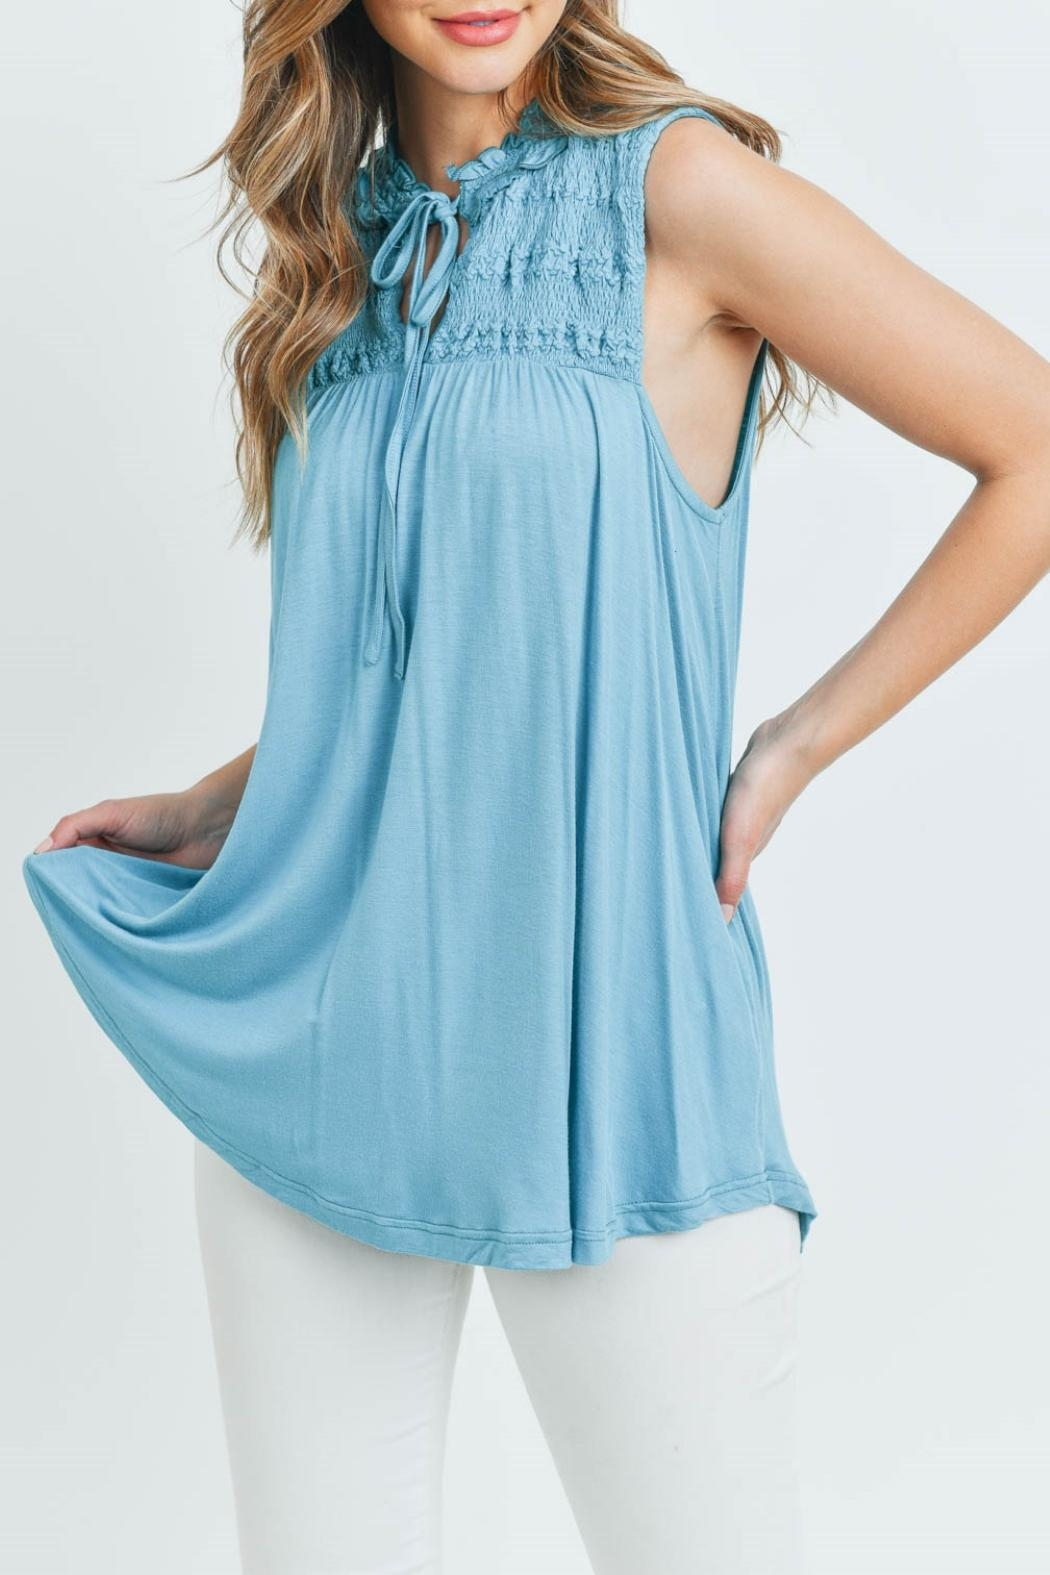 L Love Turquoise Top - Main Image